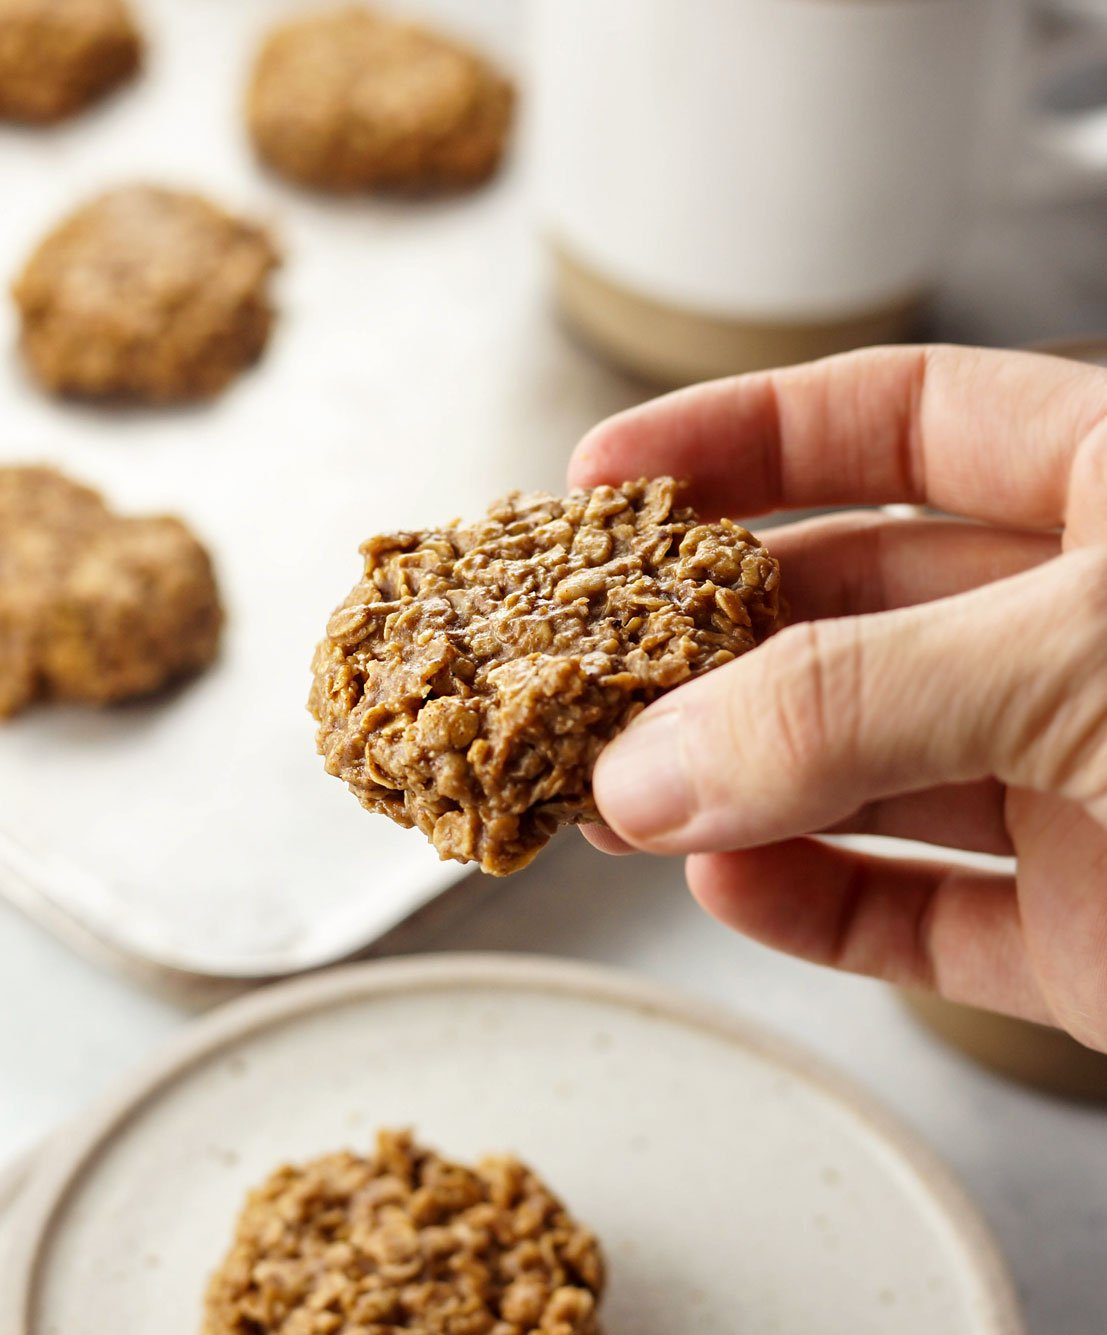 hand holding a no-bake spice cookie